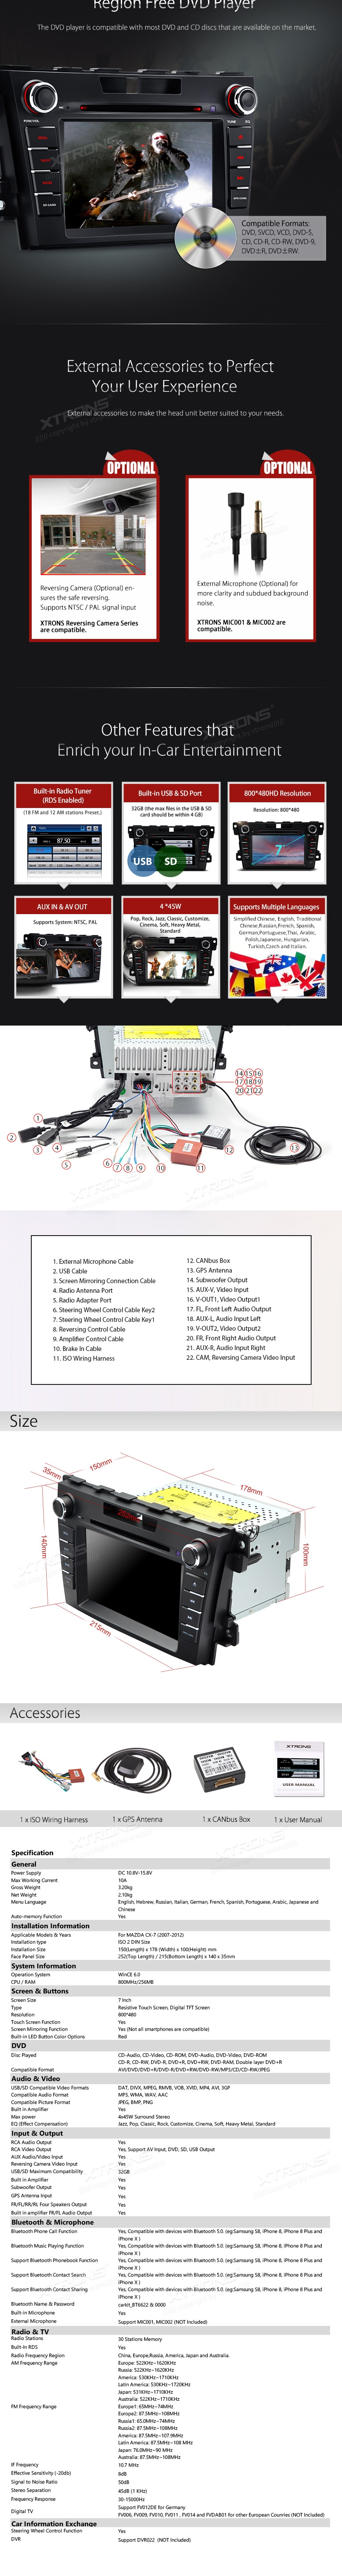 7hd Digital Touch Screen Gps Canbus Car Dvd Player With Wiring Harness Show Full